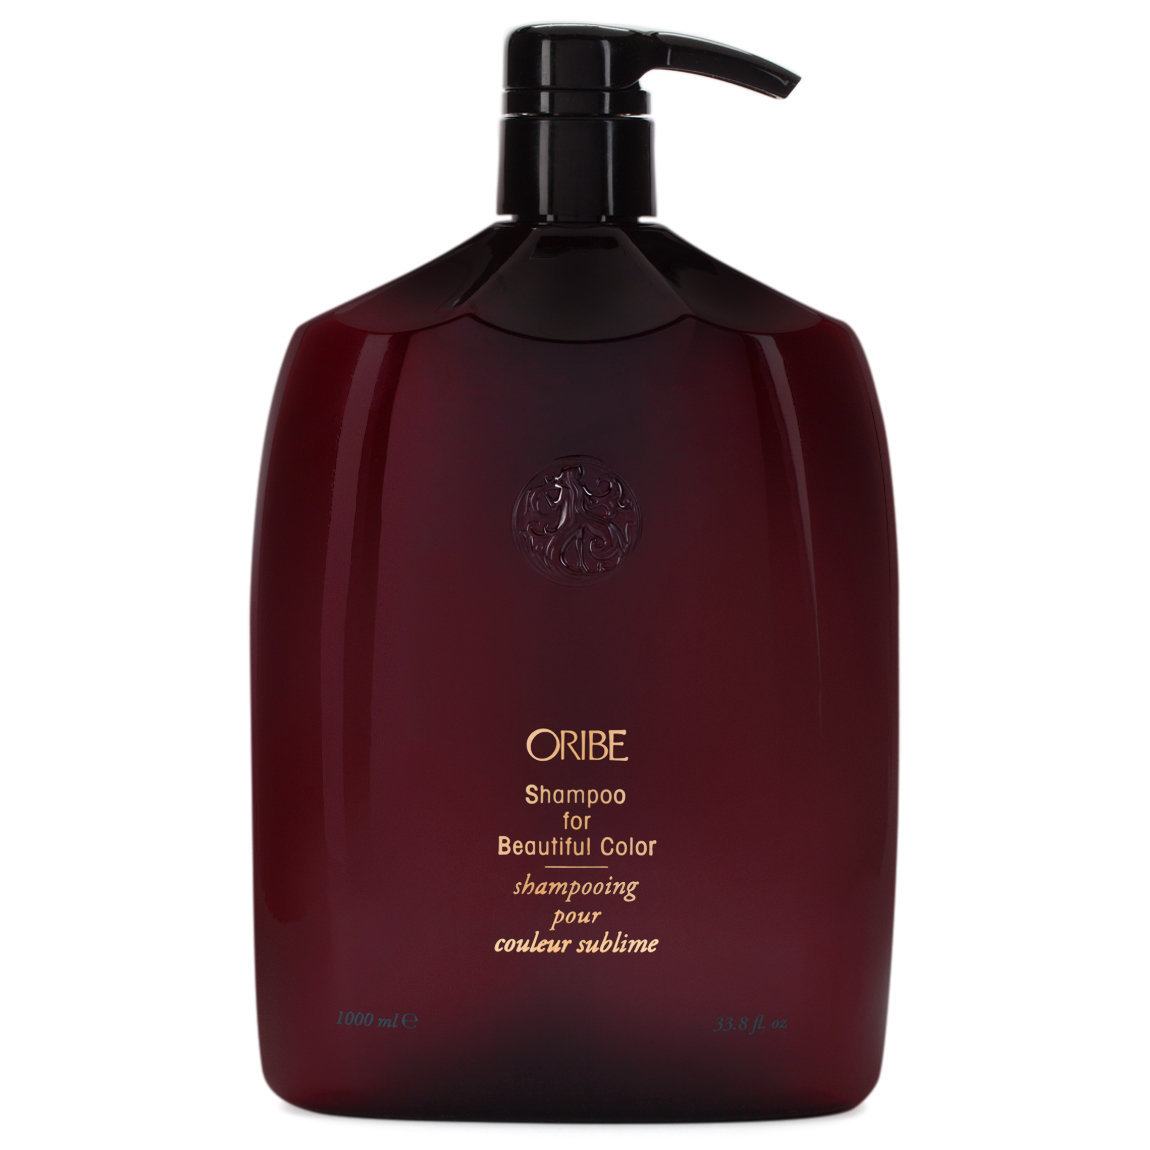 Oribe Shampoo for Beautiful Color 1 L product swatch.